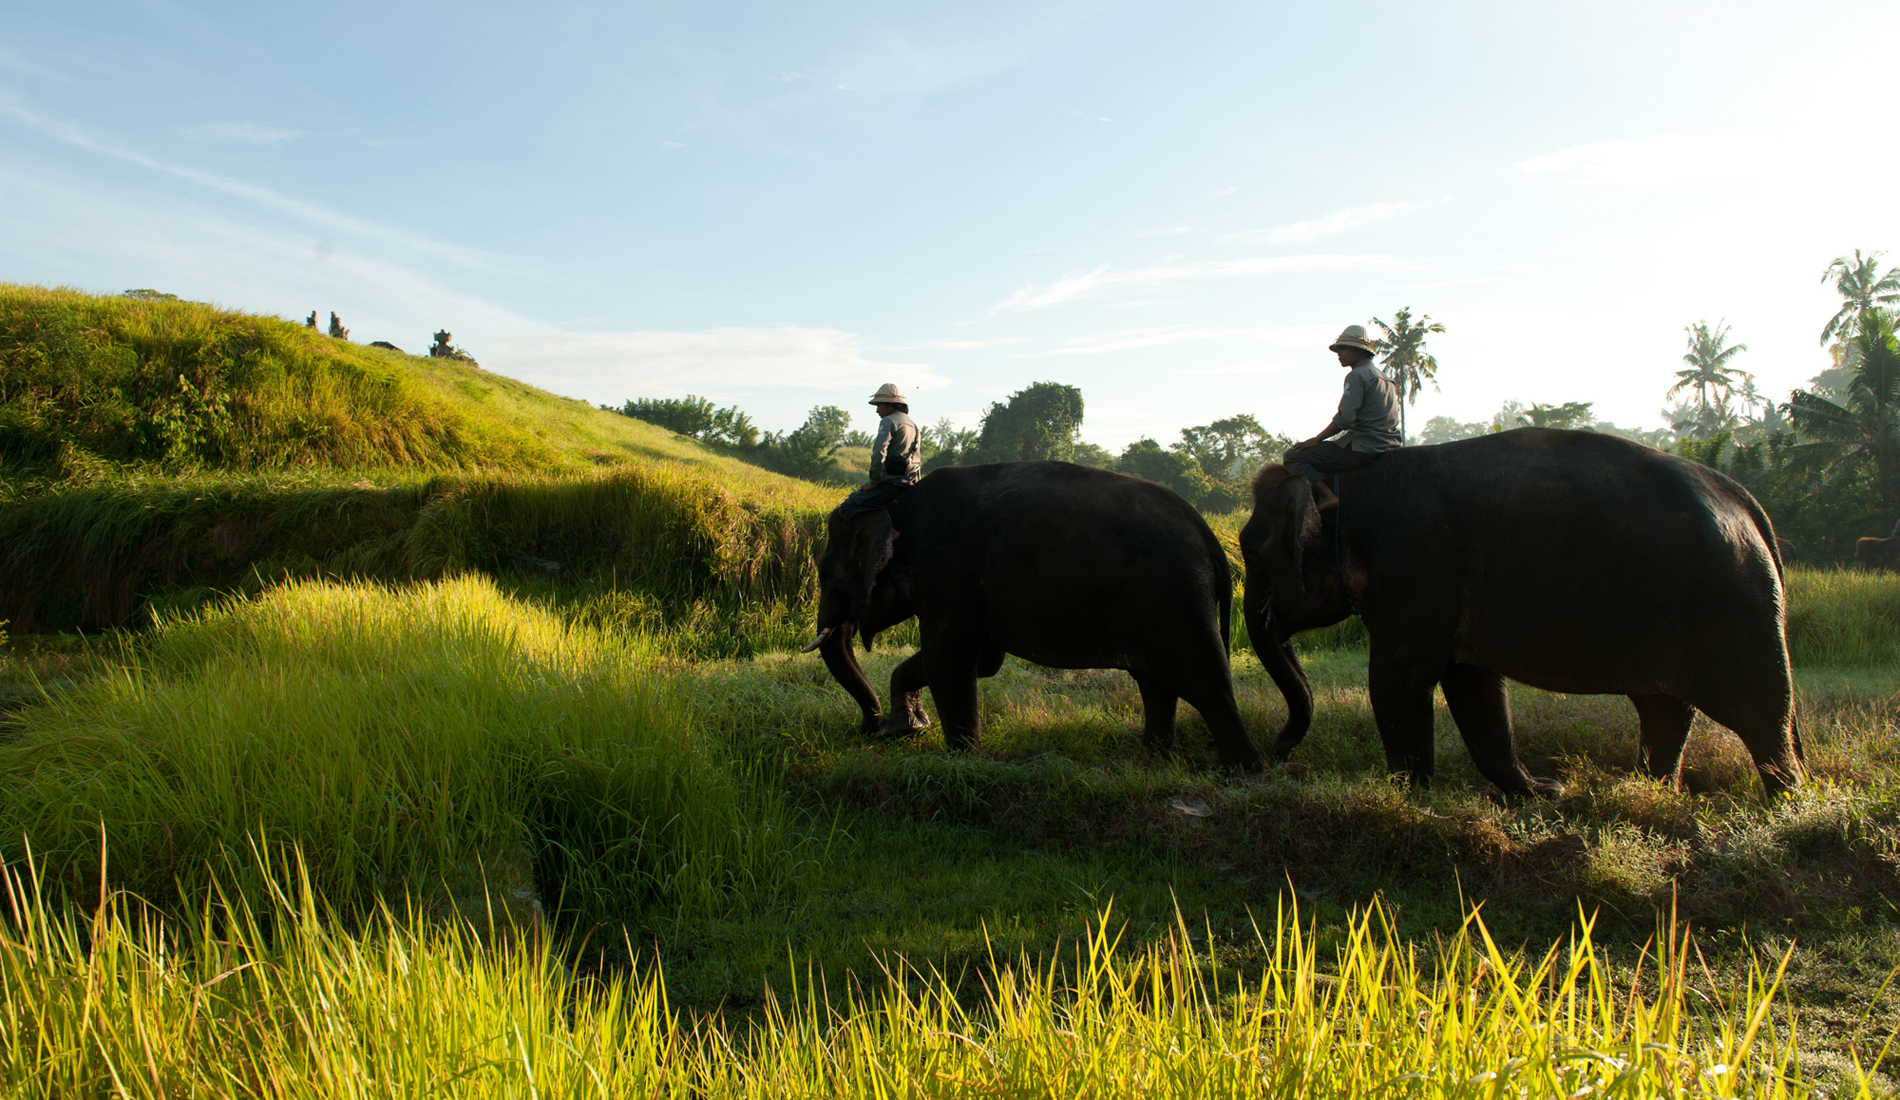 Bali Elephant Ride - Bali Private Transport and Tour in Bali